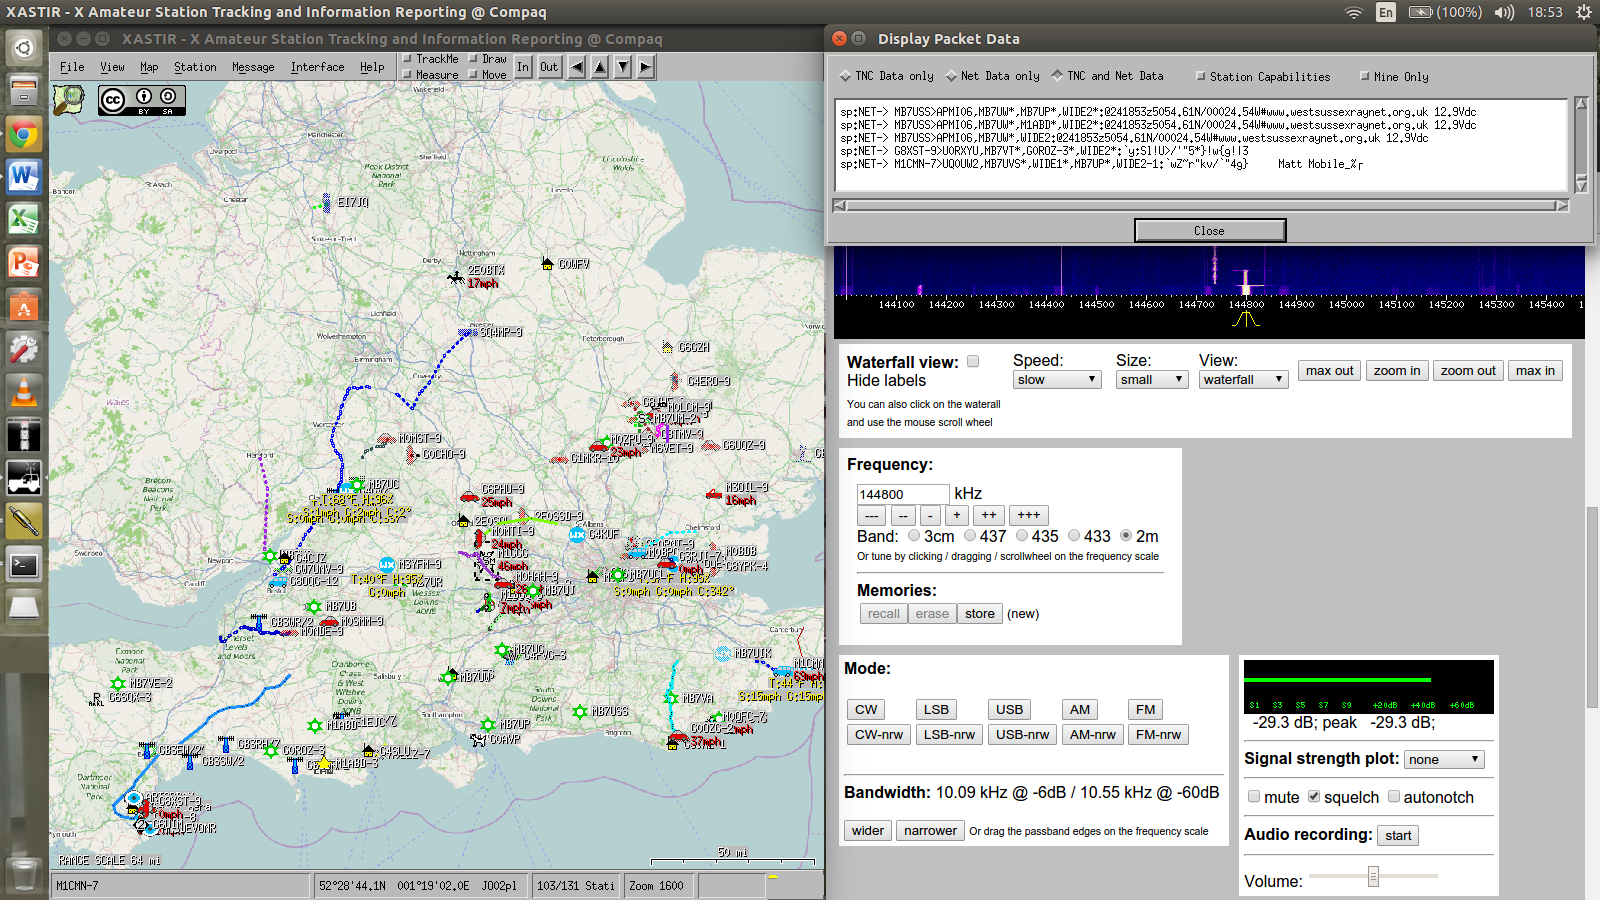 APRS from WebSDR